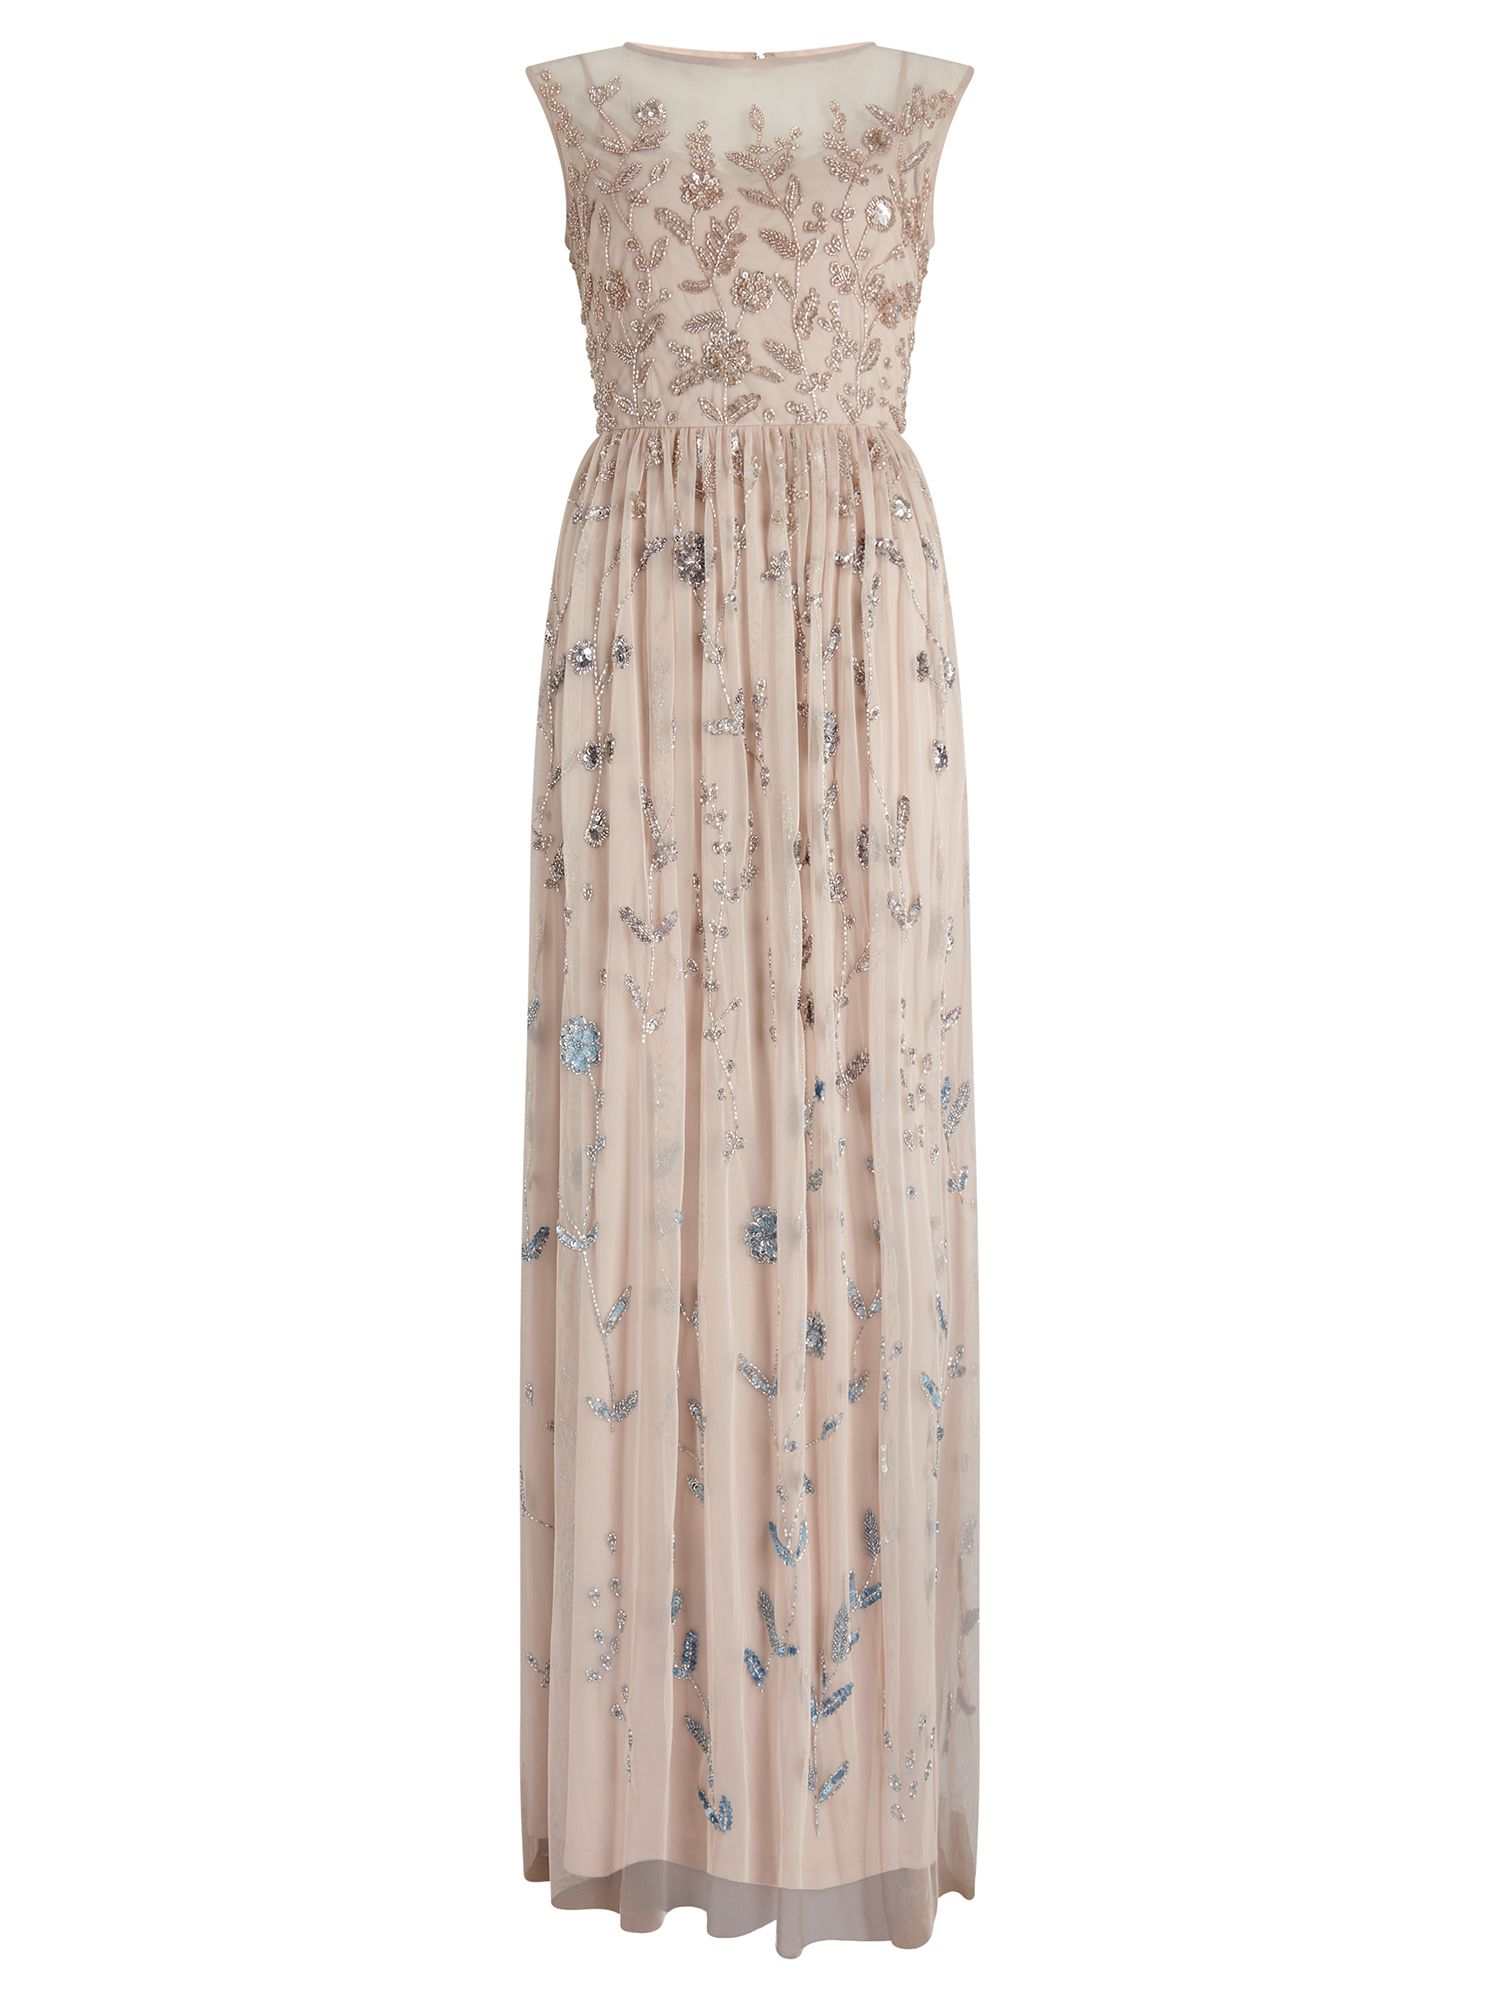 Adrianna Papell Embellished Evening Dress, Pink